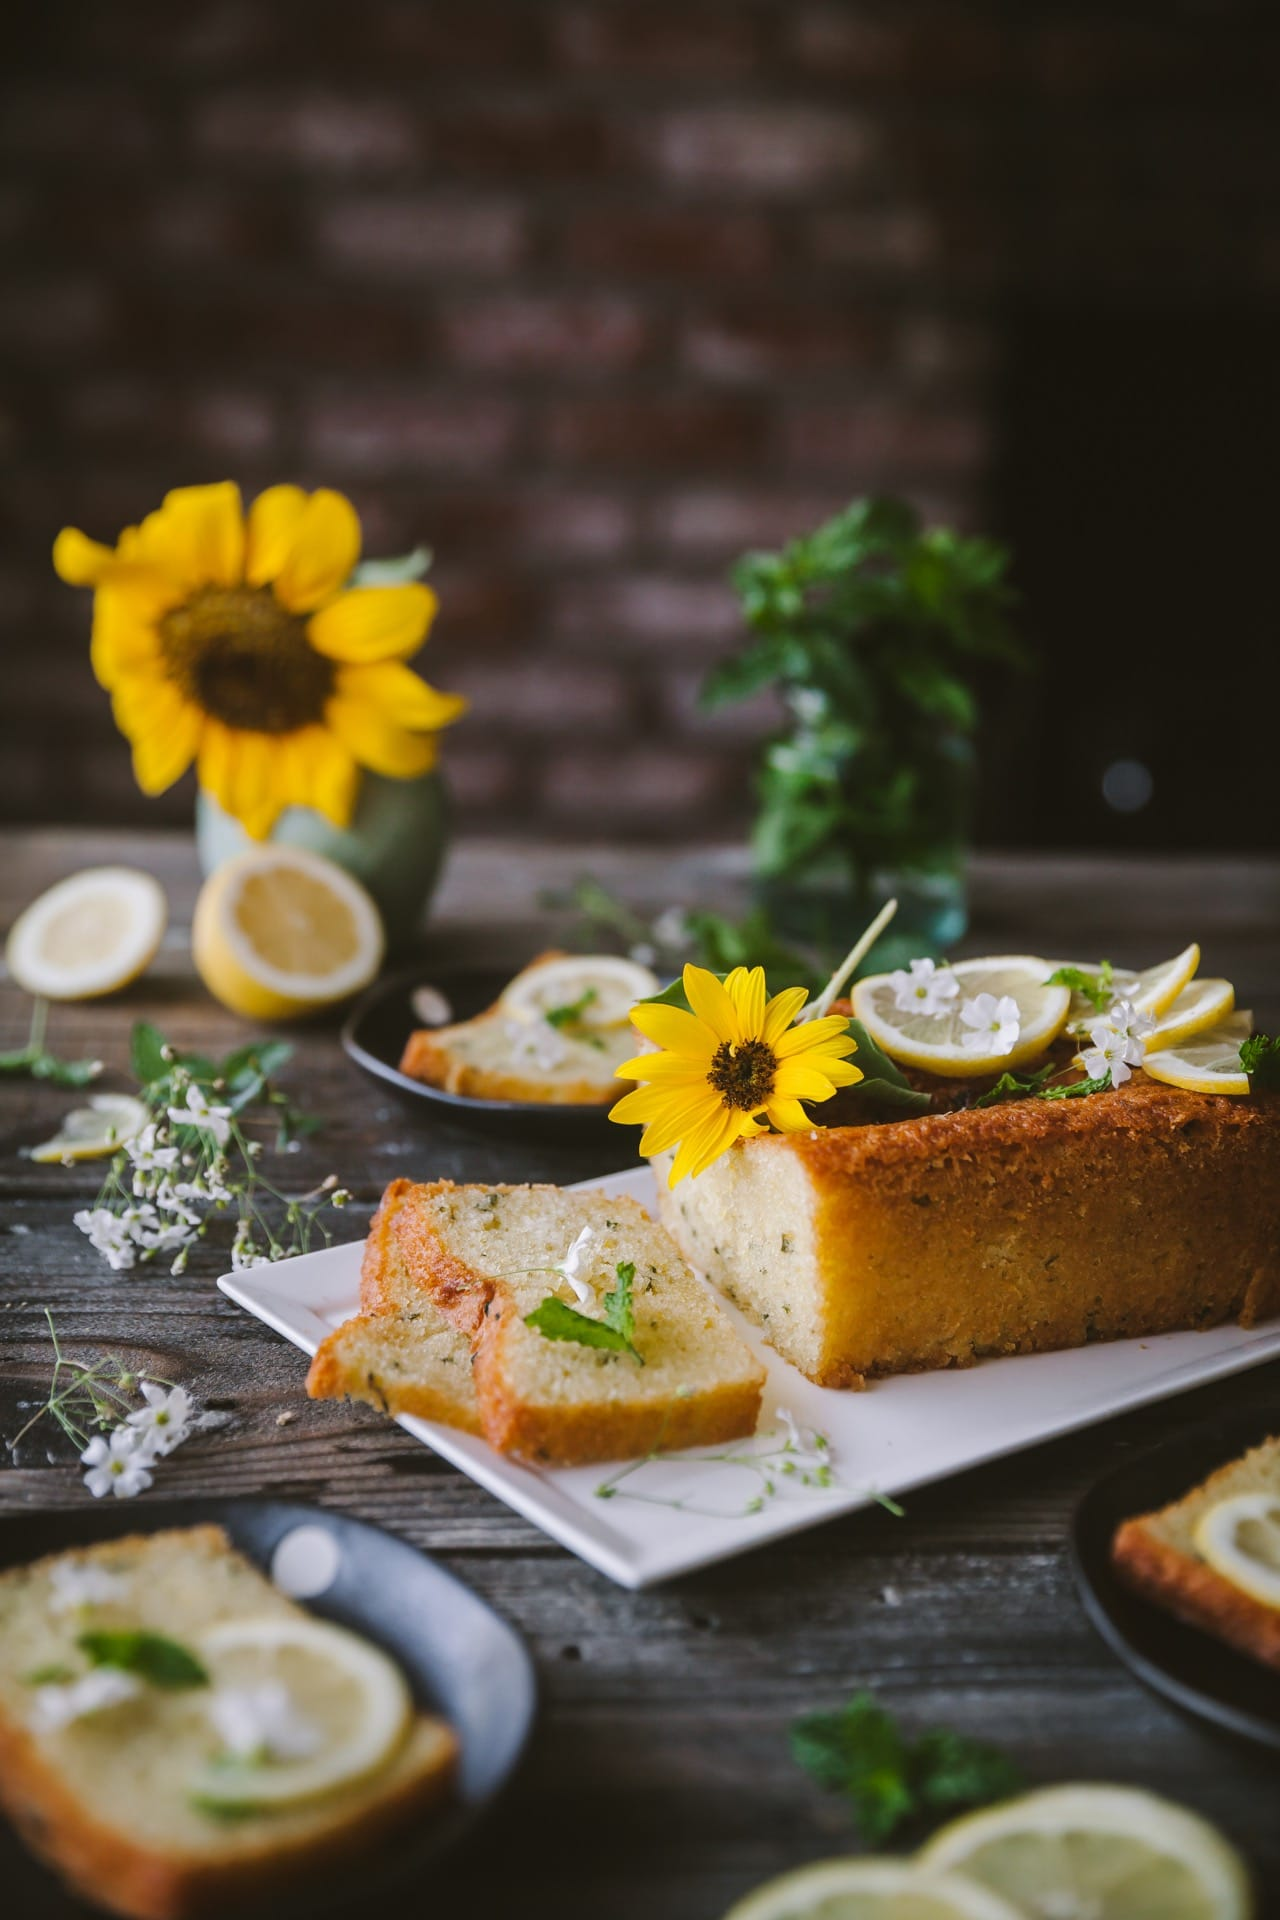 Lemon Mint Cake styled with flowers and fresh lemon and mint. It's sliced and the slices are kept next to the rest of the cake loaf